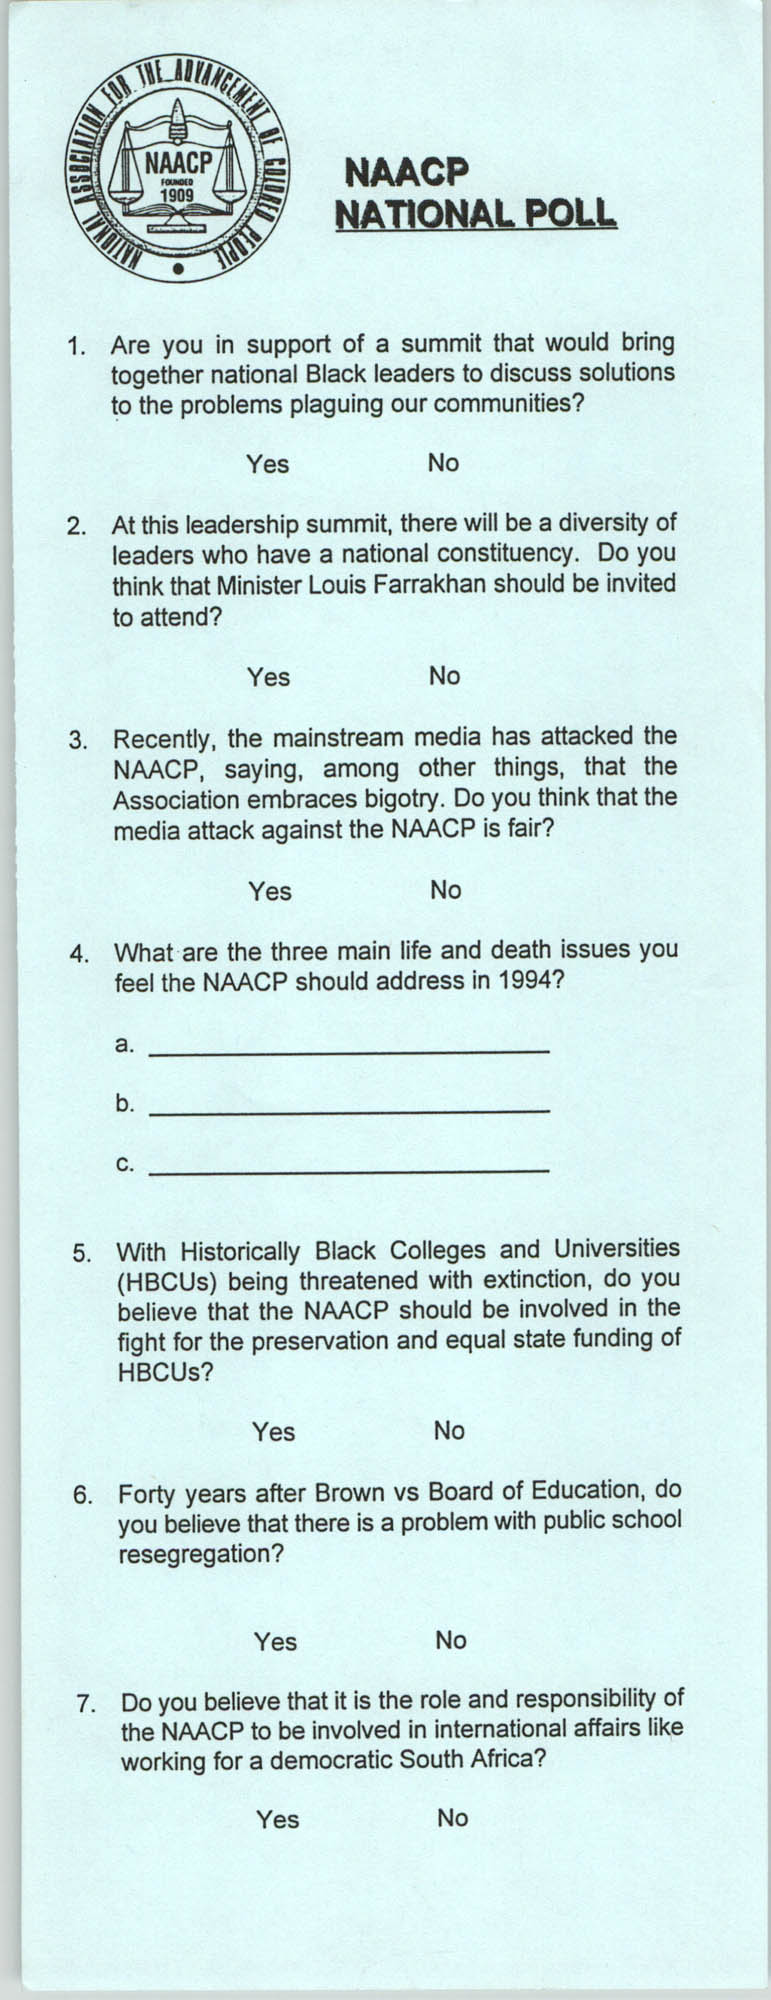 NAACP National Poll